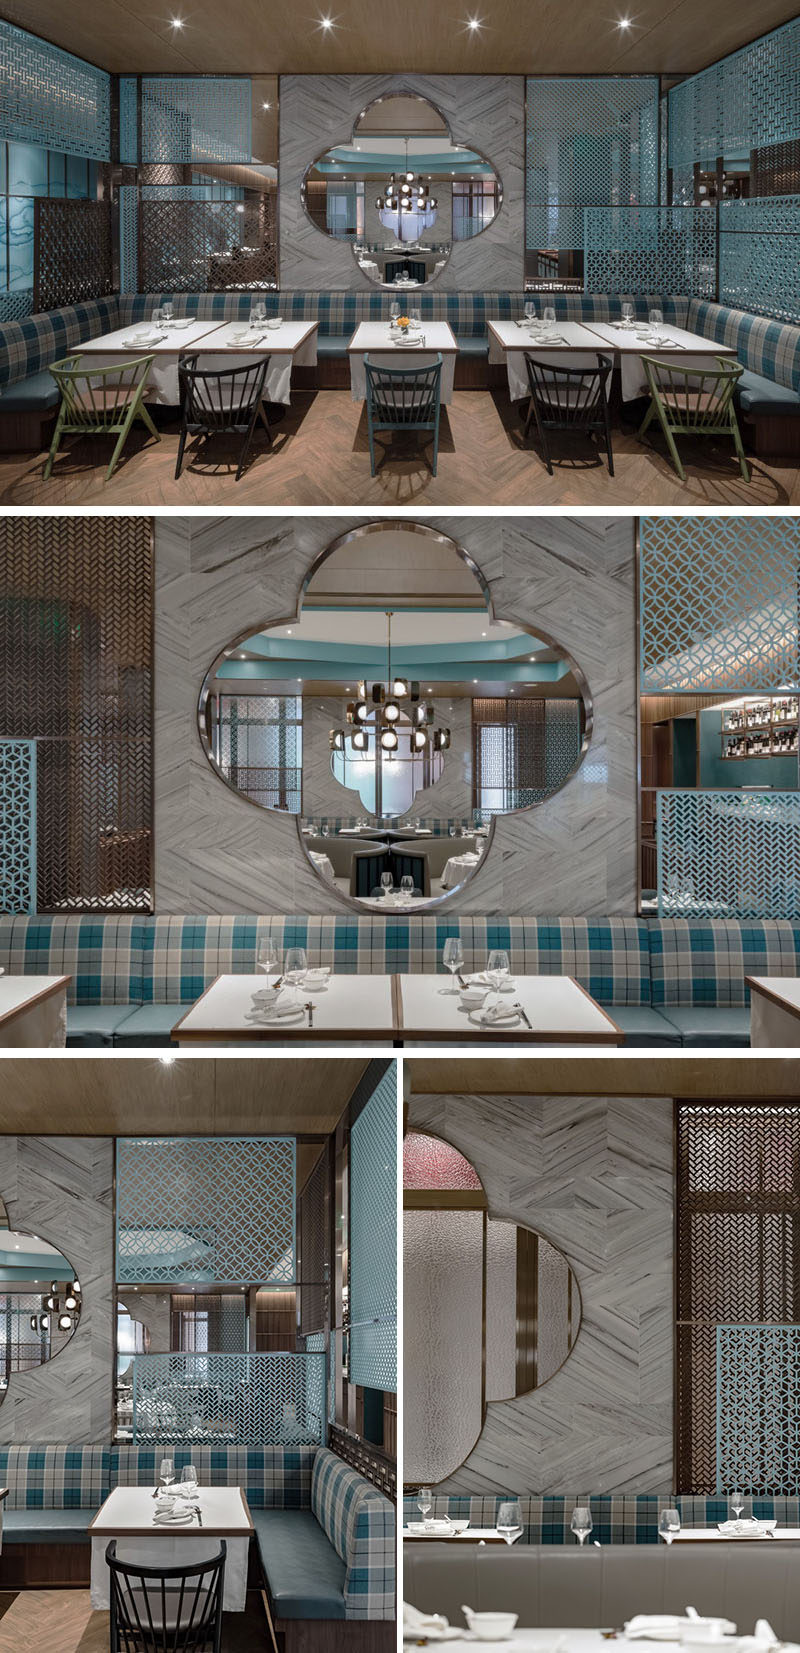 The main dining room in this modern restaurant has a seating area with banquette seating and a modern interpretation of a Chinese garden window. #BanquetteSeating #RestaurantDesign